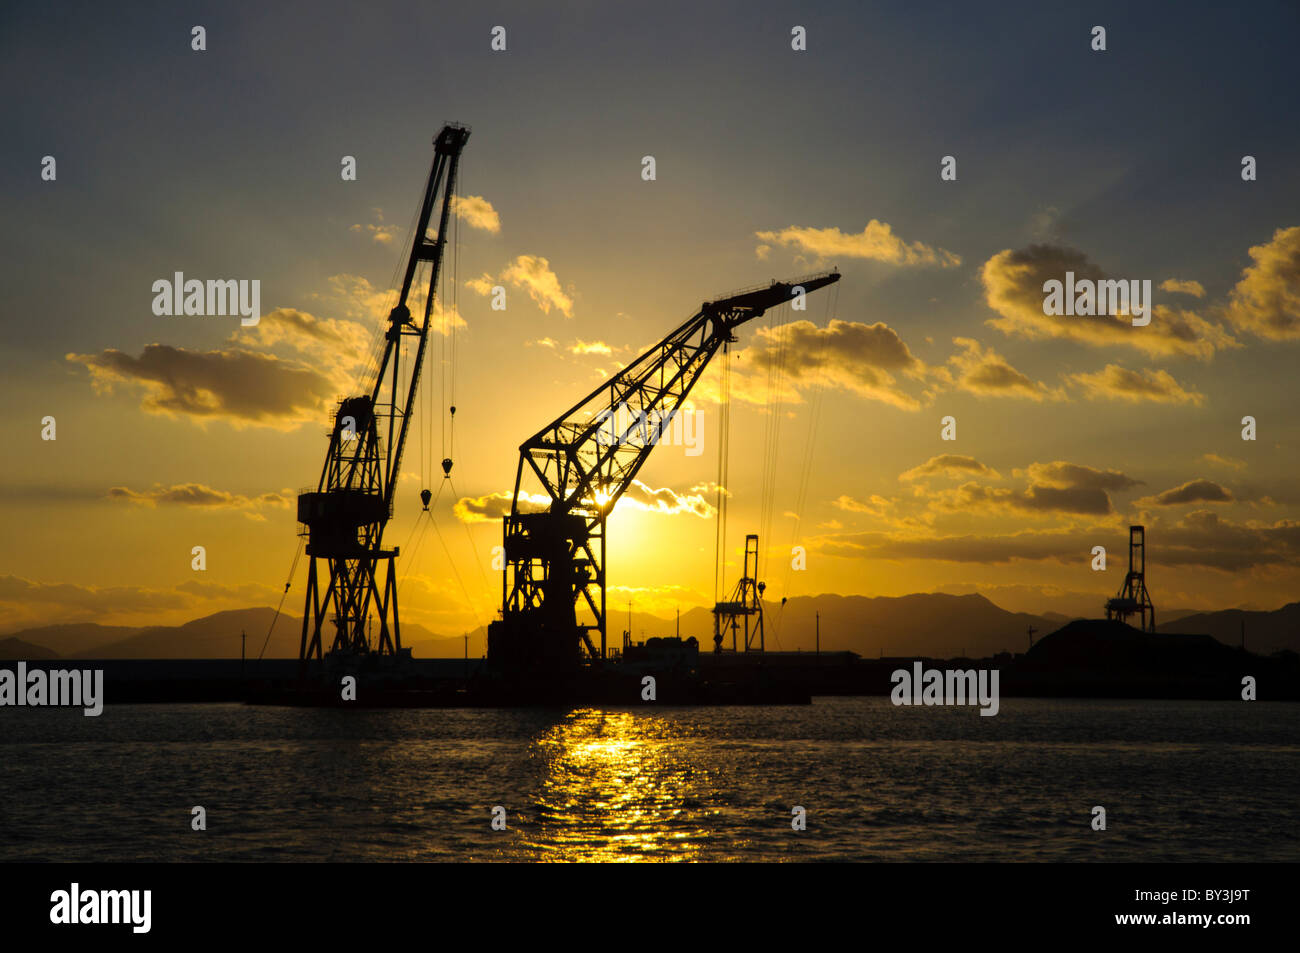 Sunset view (landscape / seascape) of derrick cranes on wharves at an industrial port in Asia - Stock Image